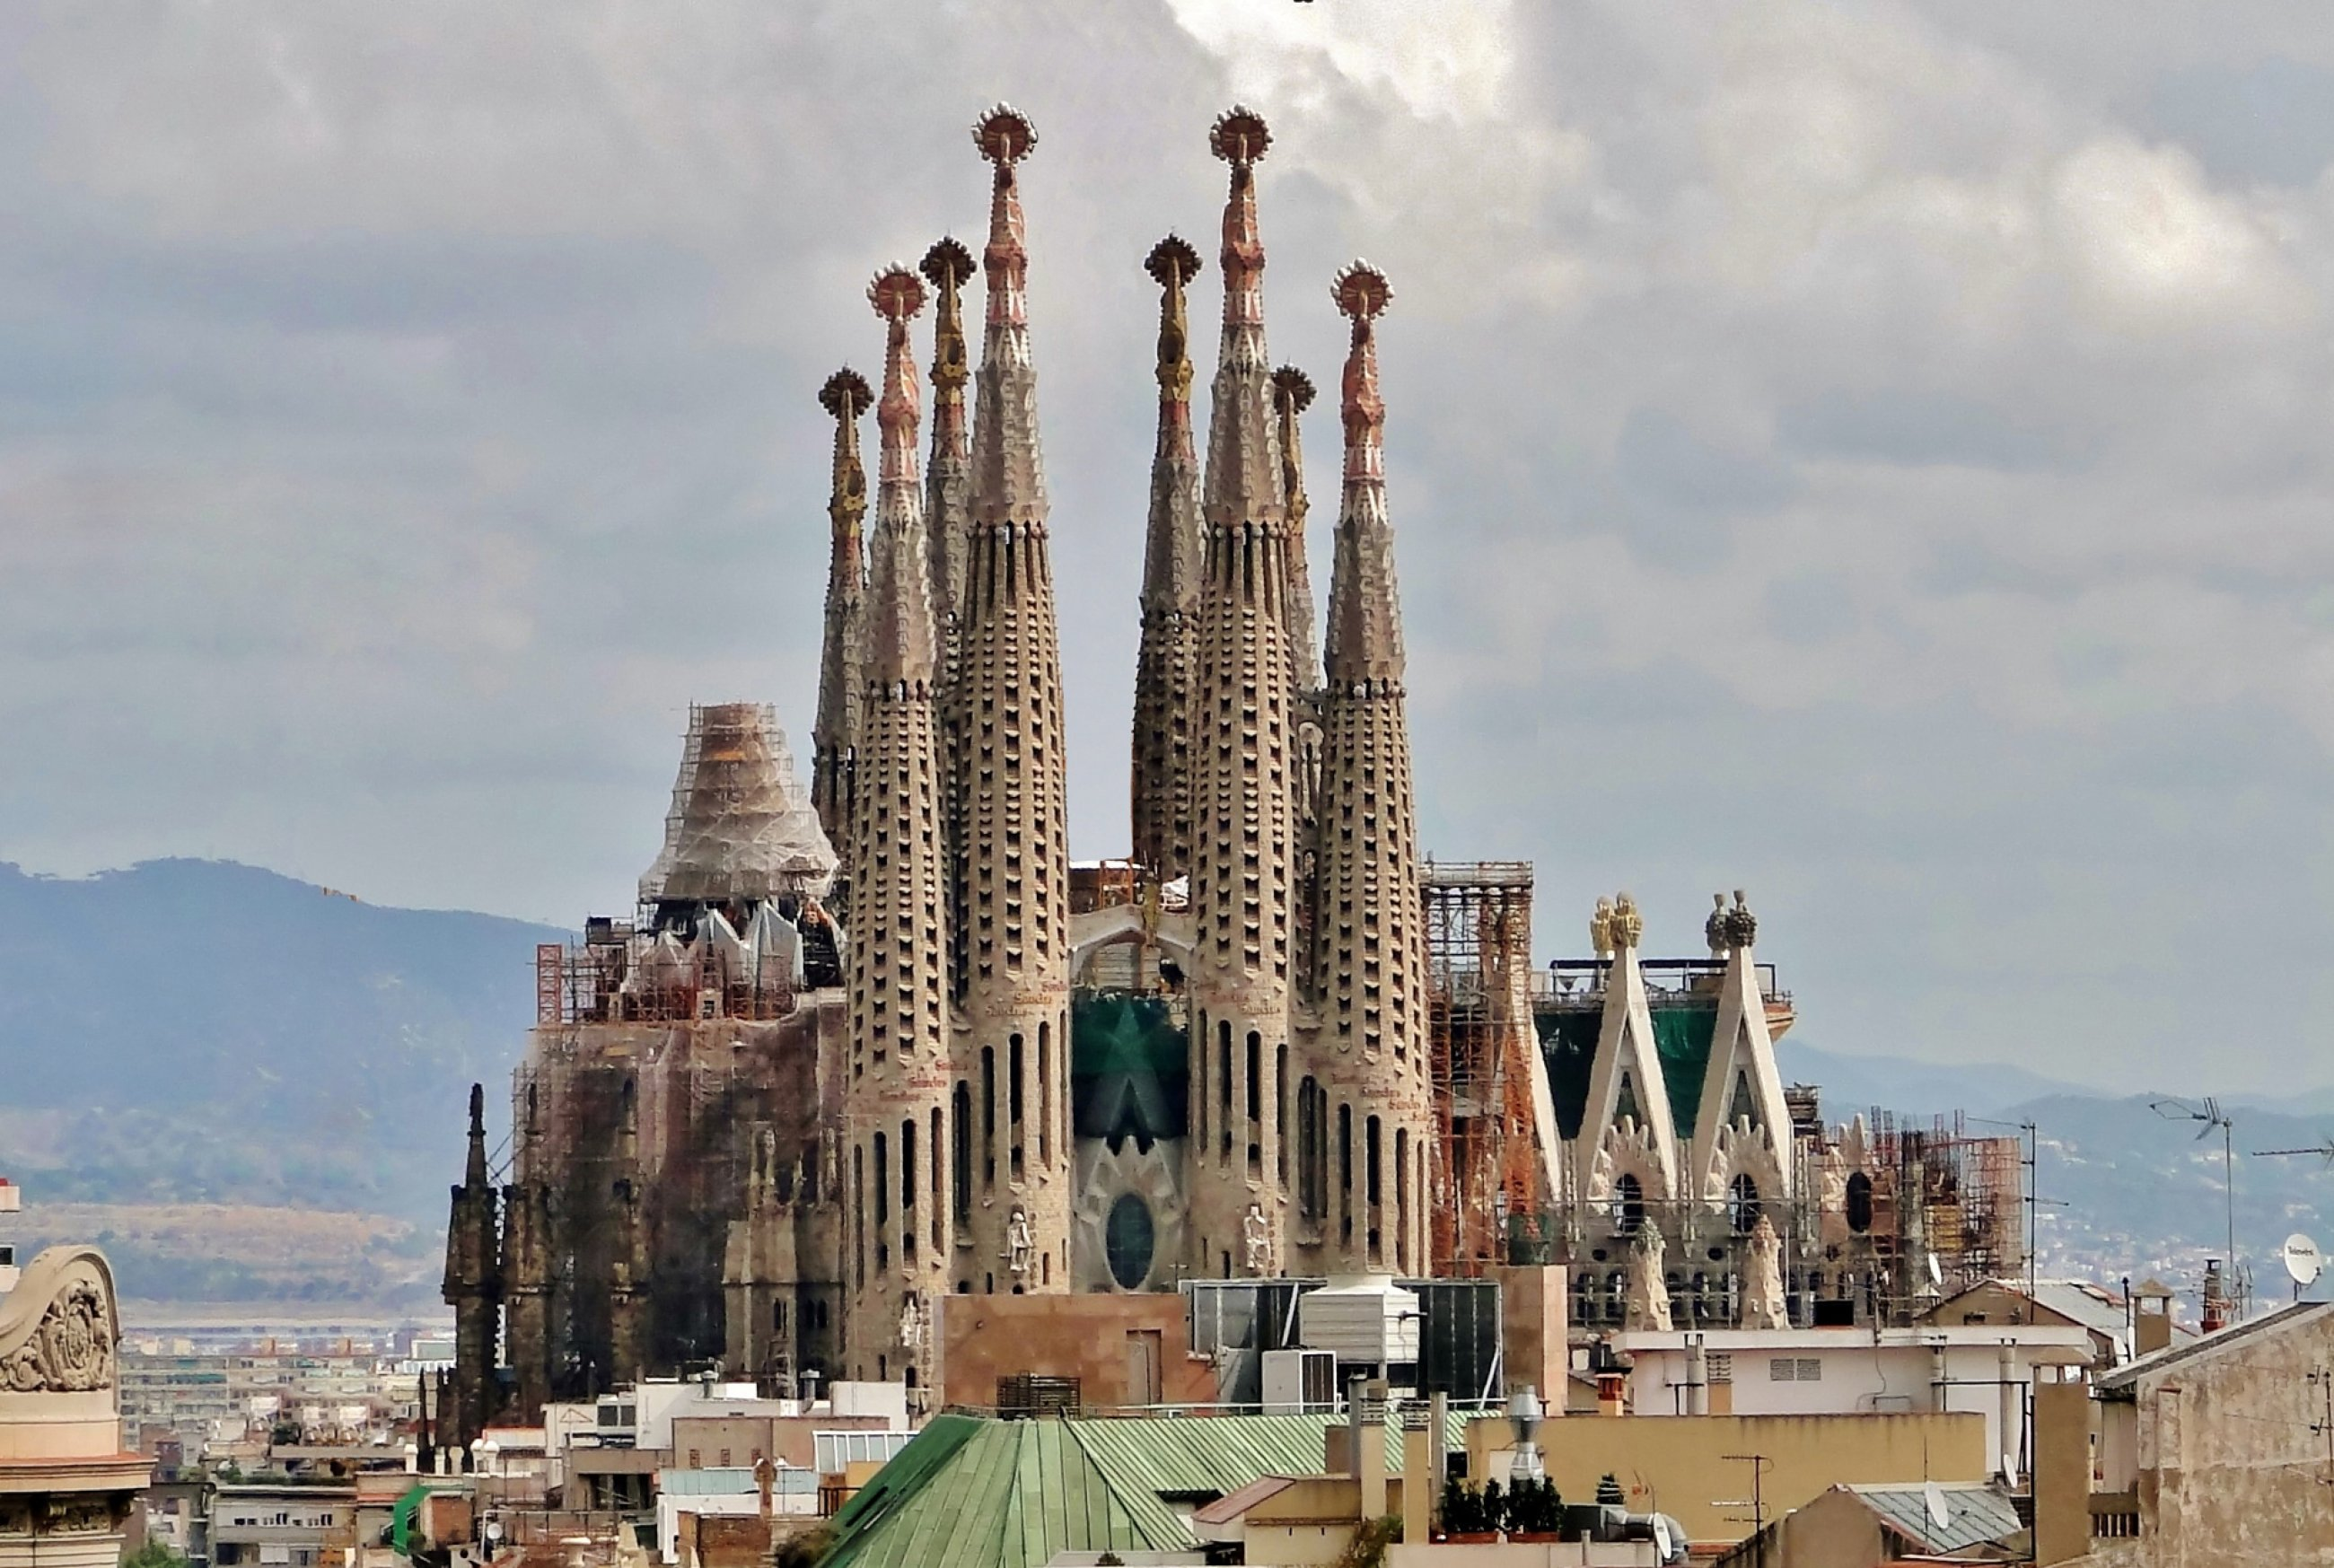 https://bubo.sk/uploads/galleries/7351/sagrada-familia-01.jpg